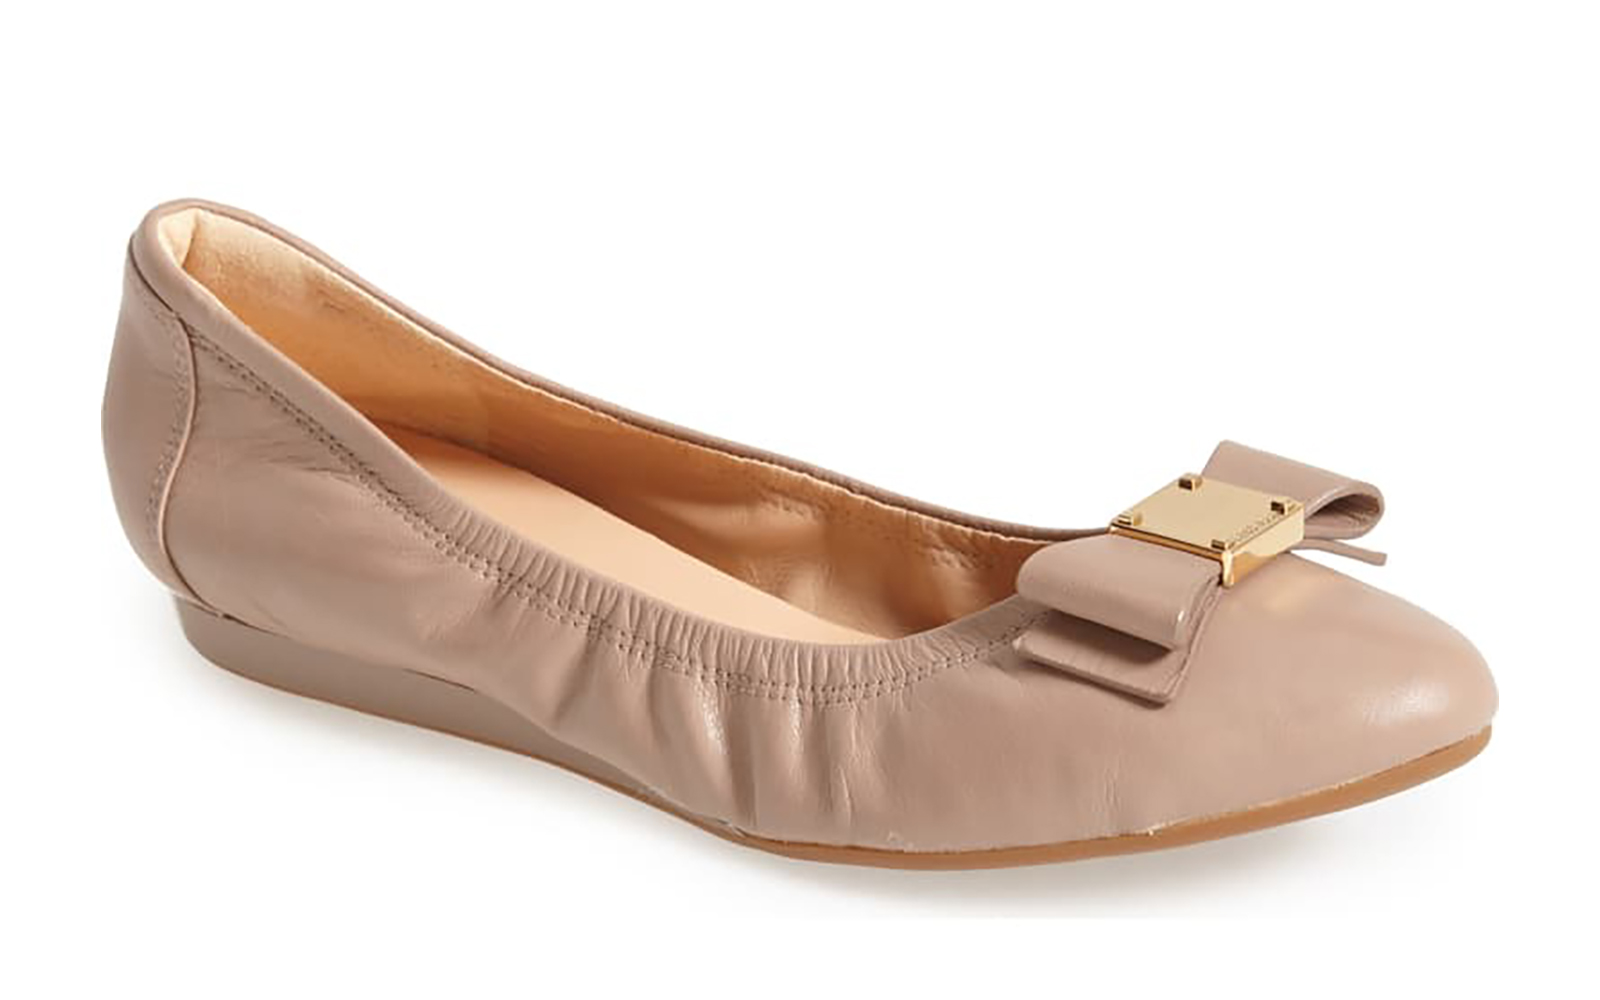 e13bab2aeed65 14 Most Comfortable Flats for 2019, According to Reviews | Travel + ...